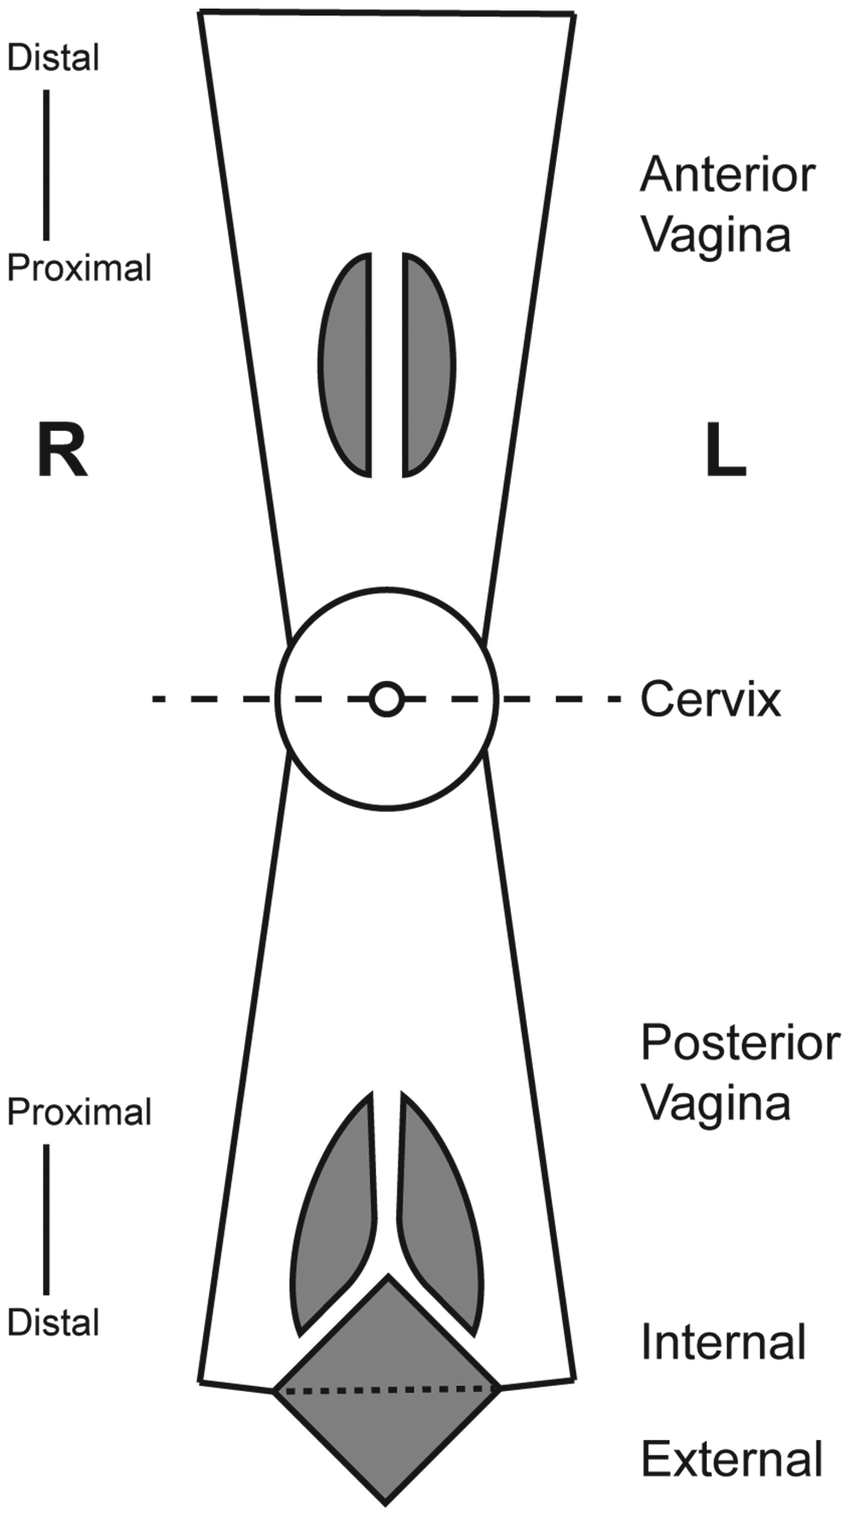 hight resolution of diagrammatic representation of the vaginal tract identifying anatomical locations where tissue specimens were obtained dashed